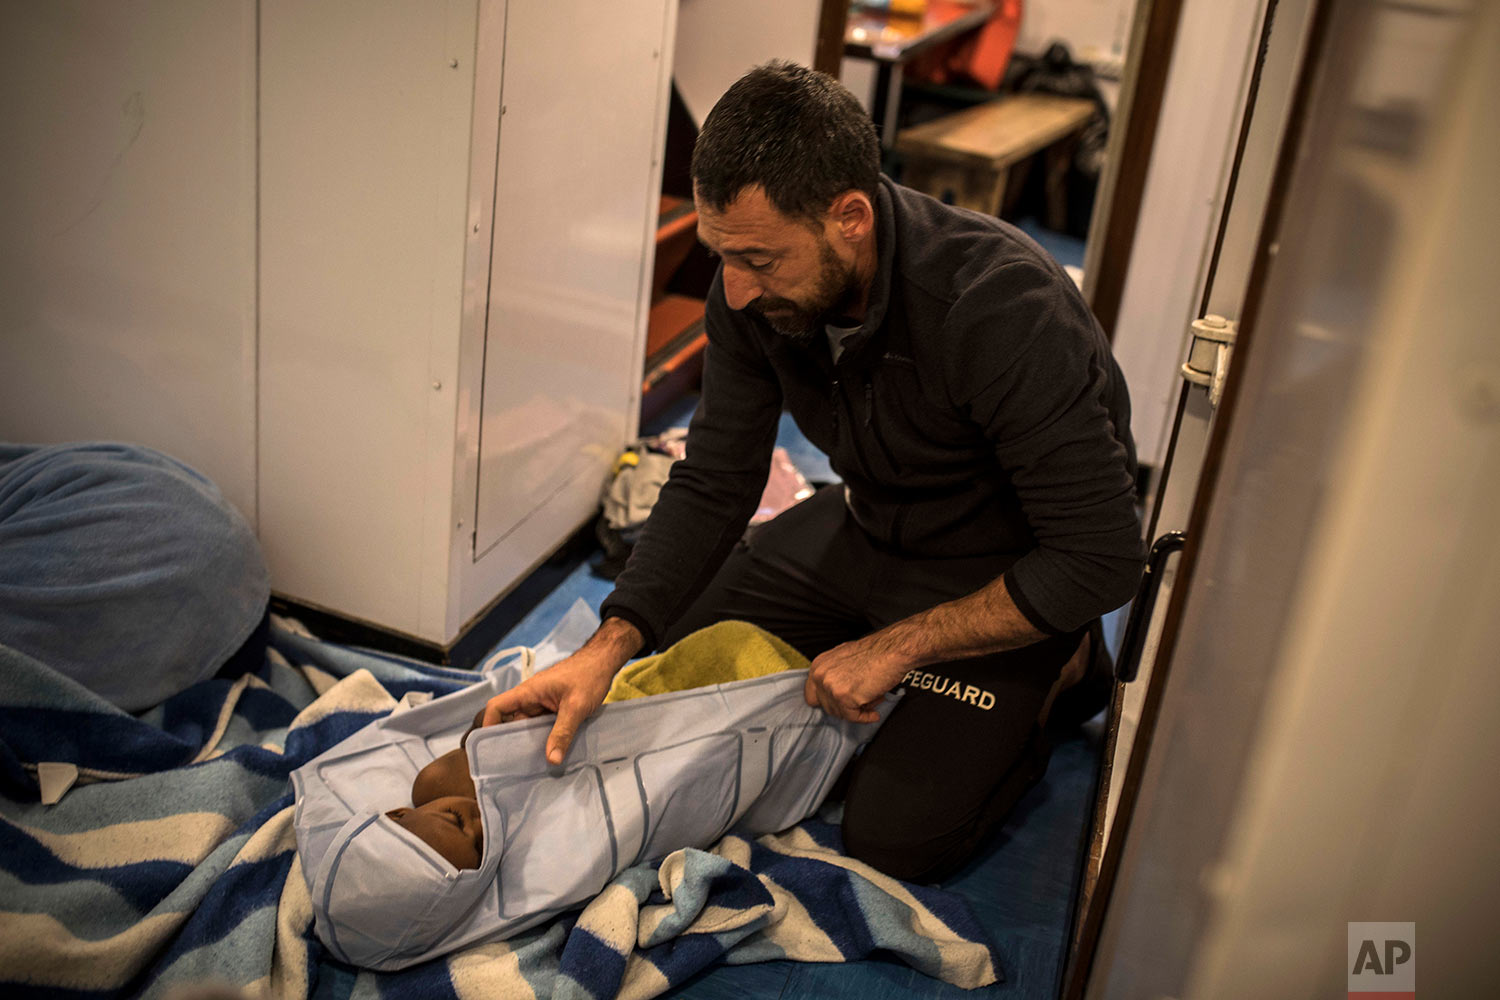 In this Thursday, Jan. 18, 2018 photo Guillermo Cañardo, a doctor from the Spanish NGO Proactiva Open Arms, assists an Eritrean child as the organization's rescue vessel heads to Italy with more than 500 refugees and migrants on board. (AP Photo/Santi Palacios)